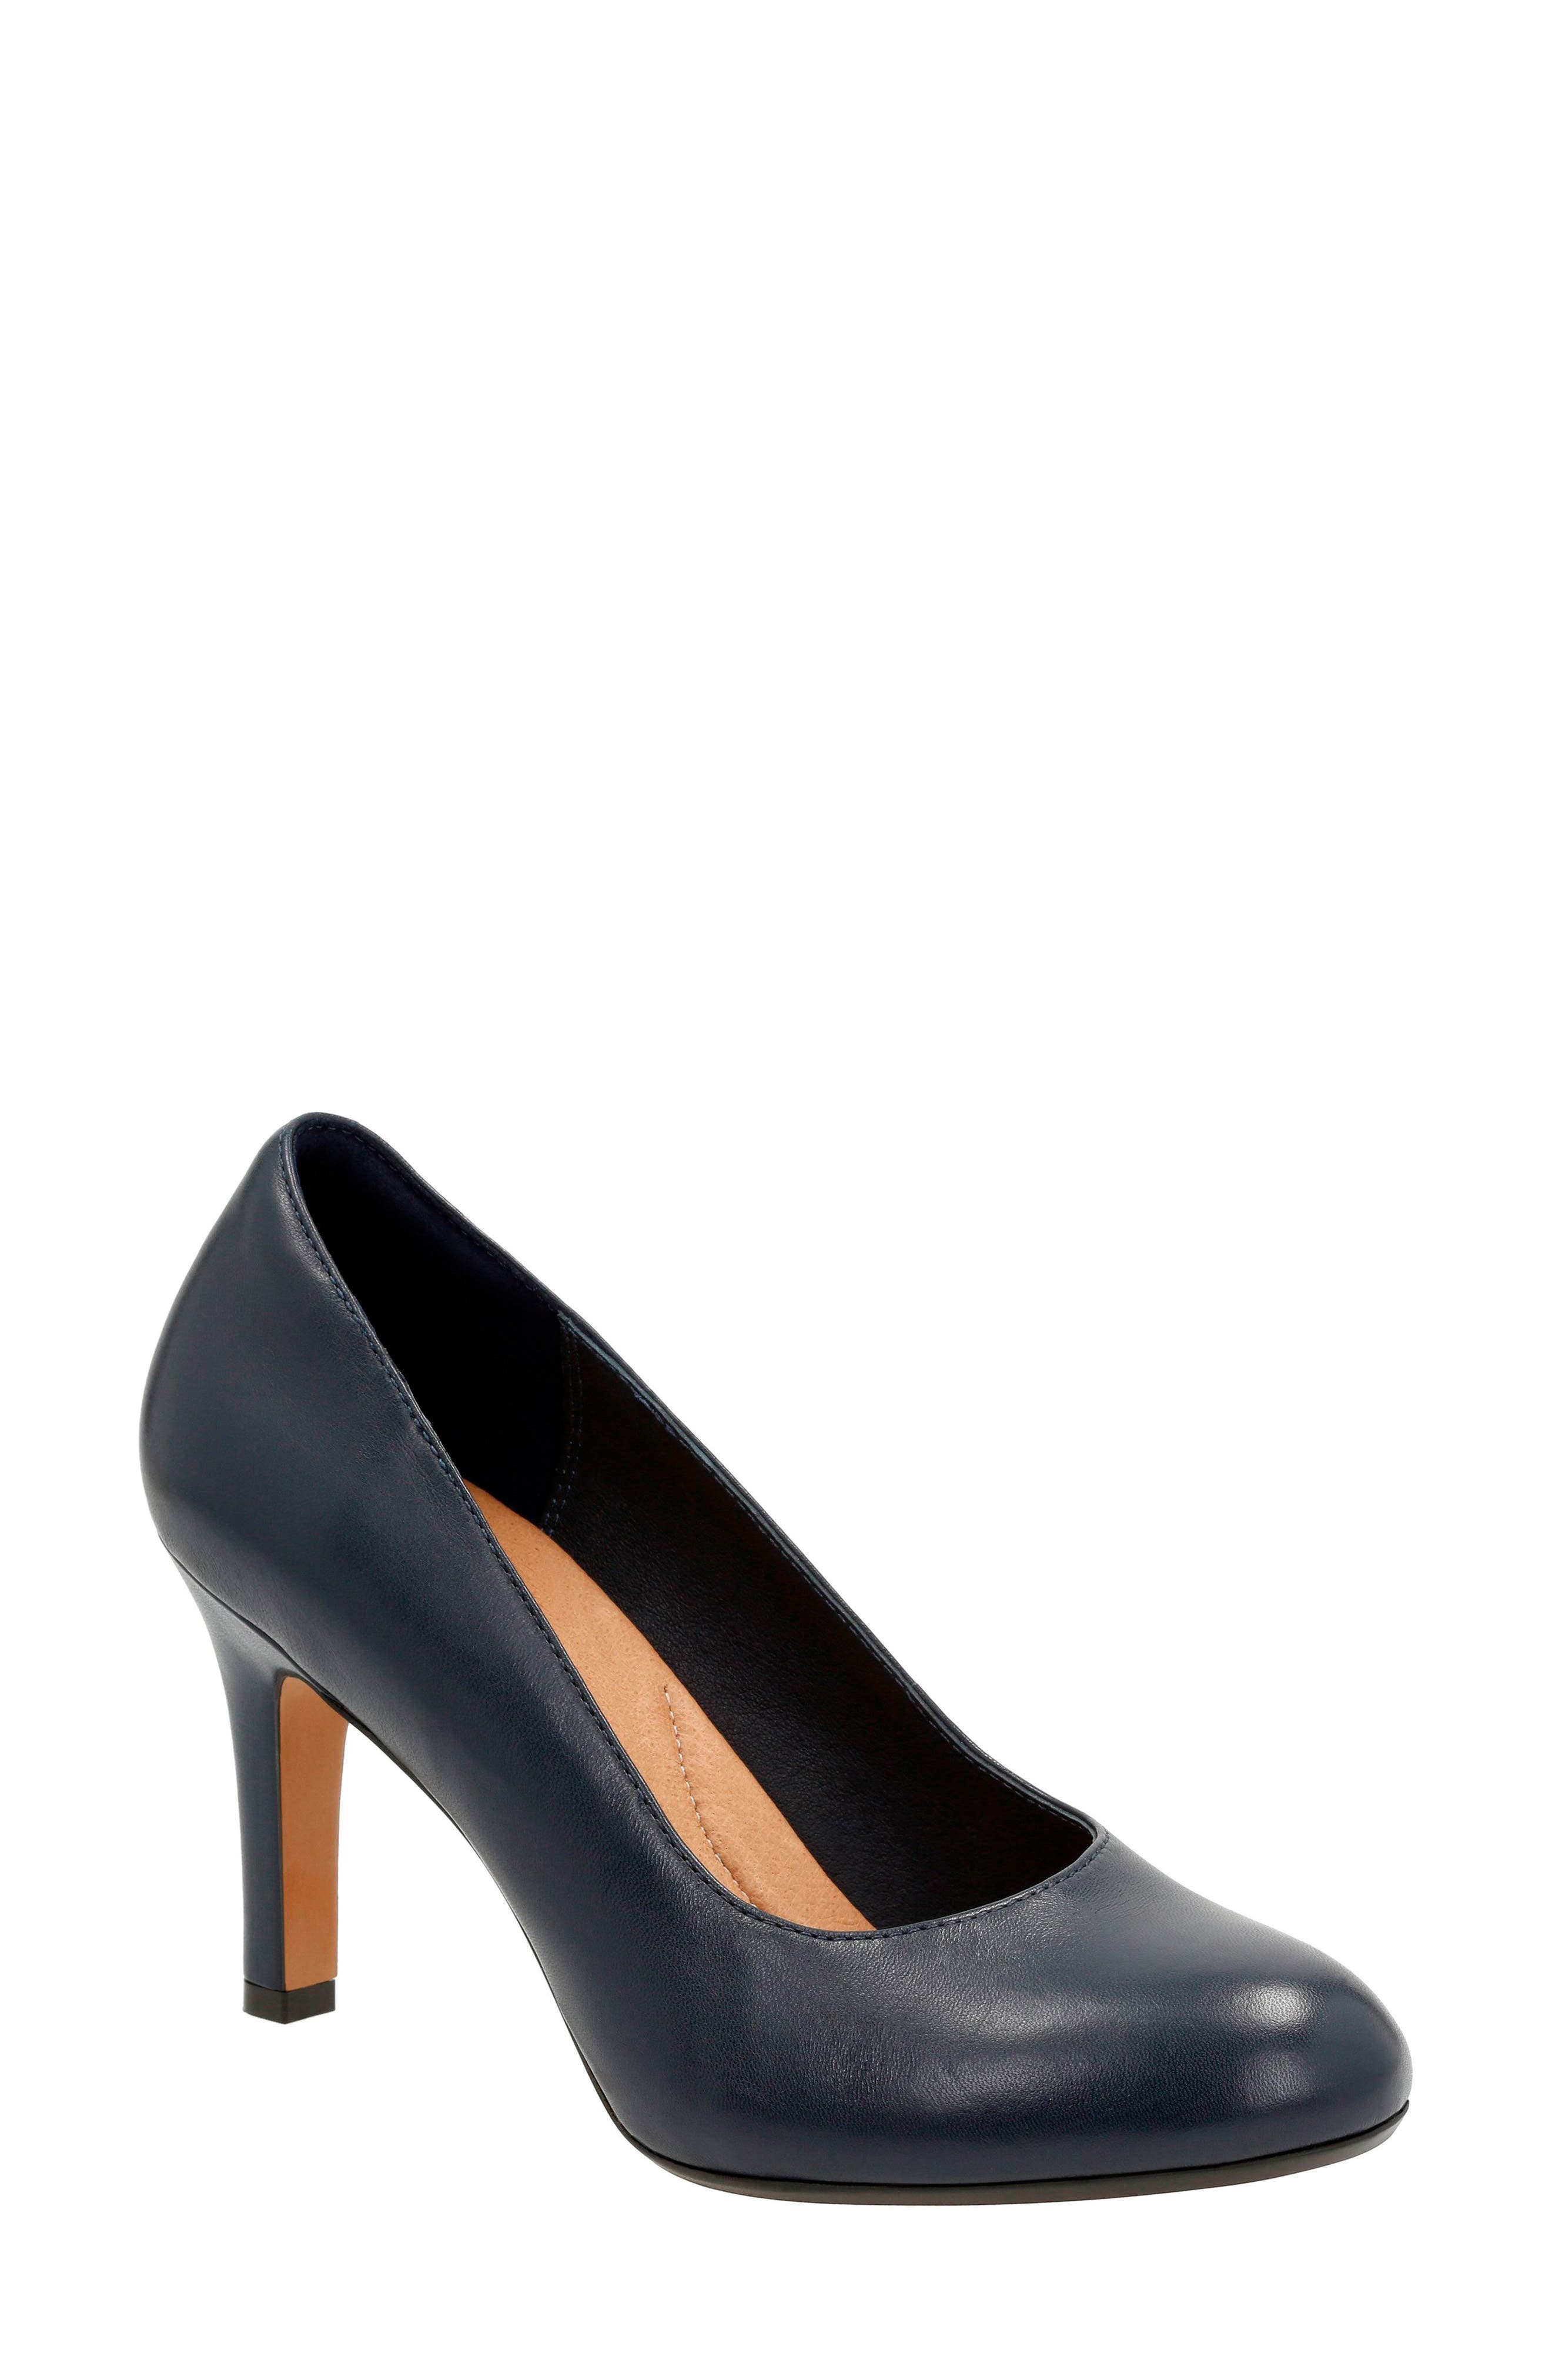 'Heavenly Star' Pump,                             Main thumbnail 1, color,                             Navy Leather